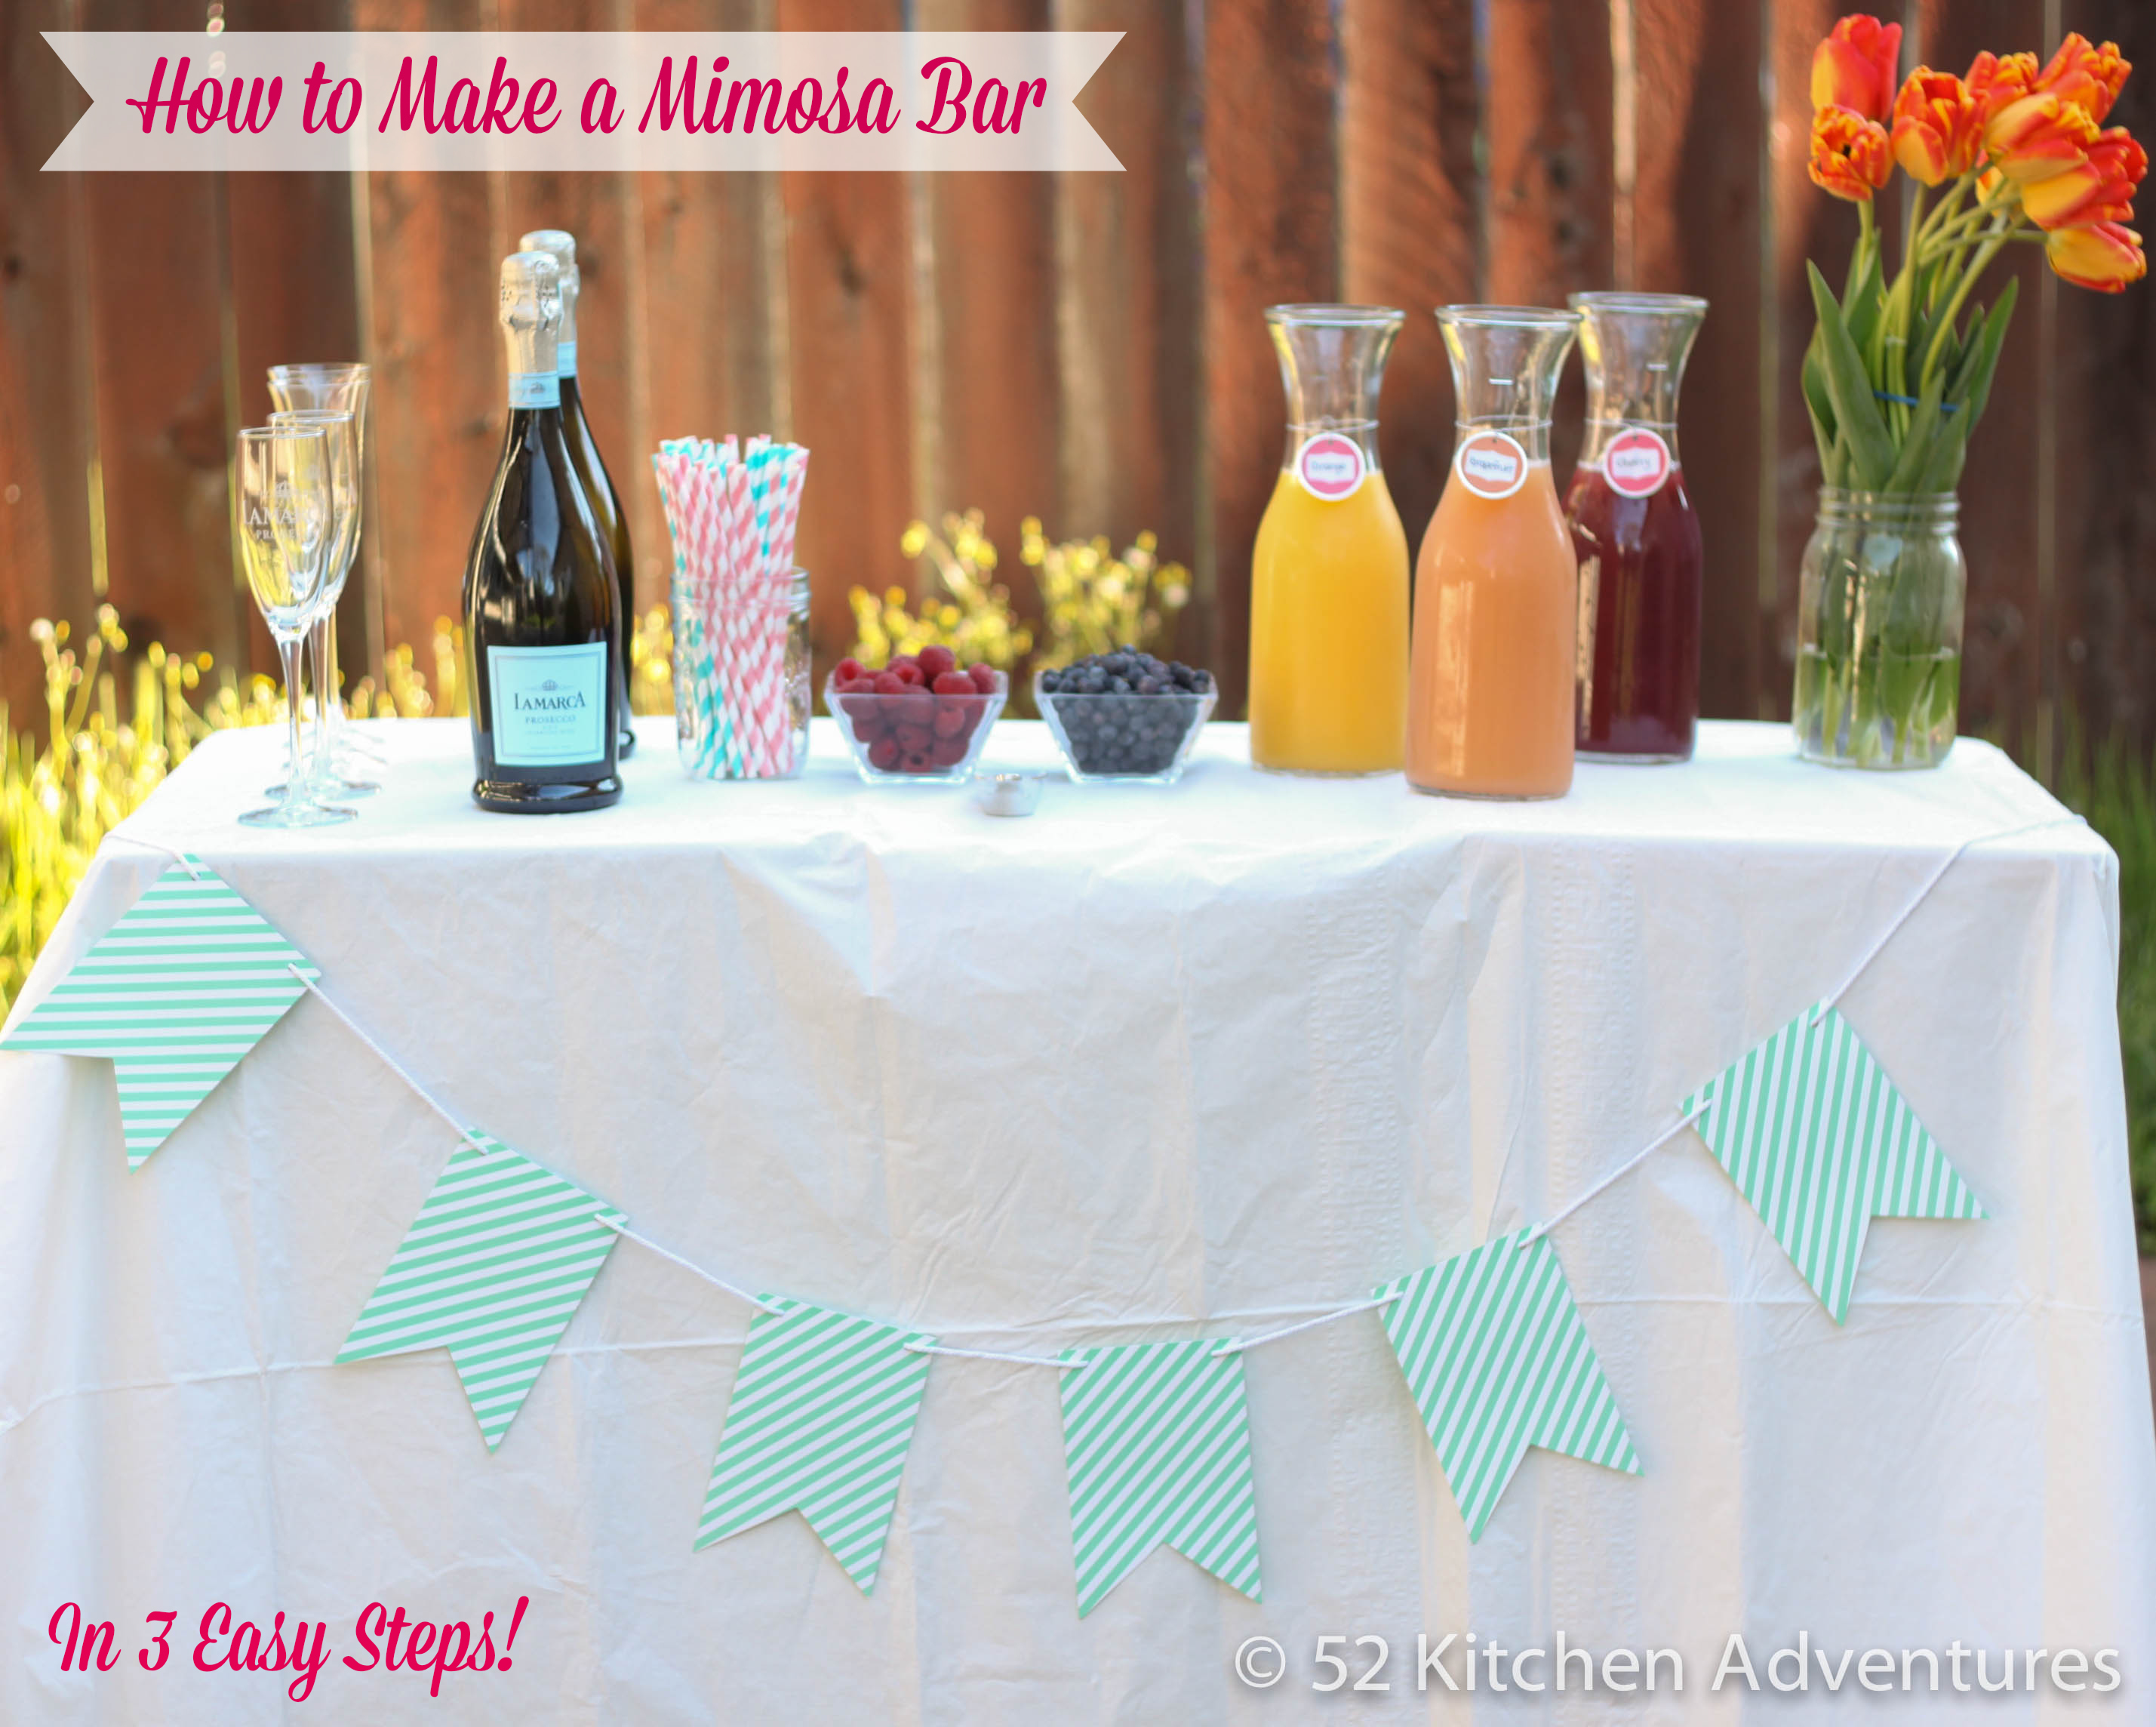 How to Make a Mimosa Bar in 3 Easy Steps